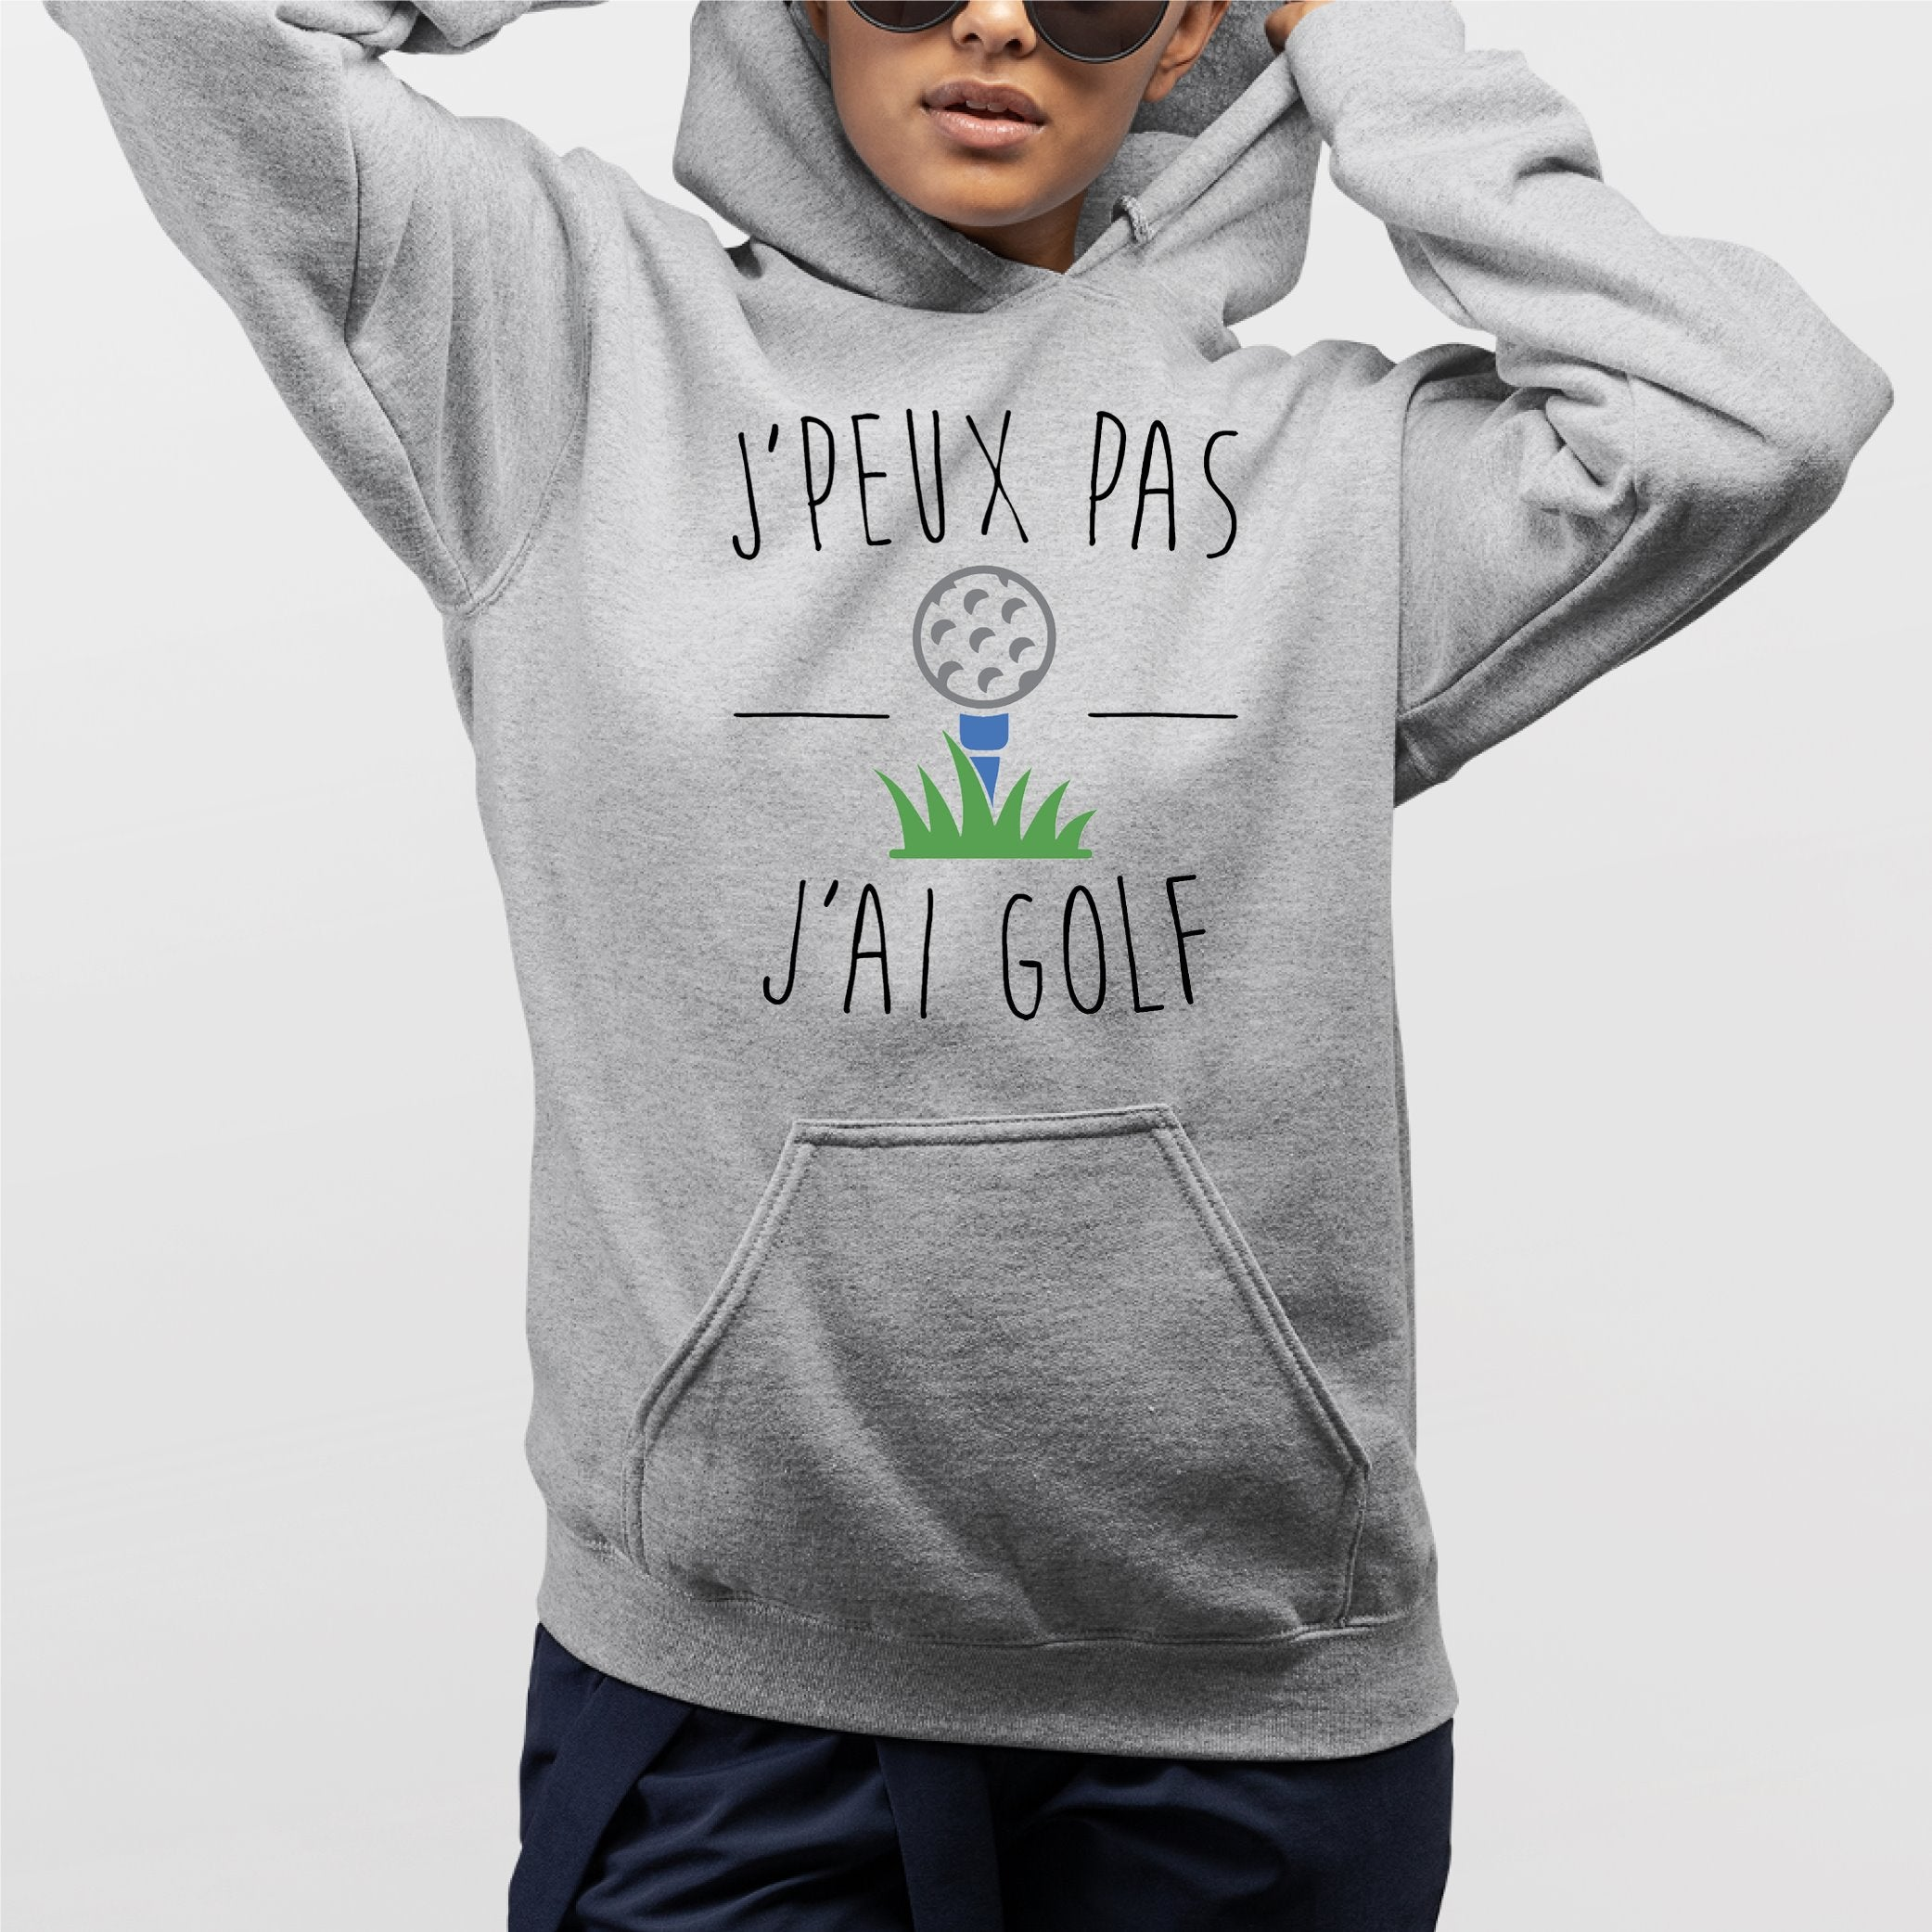 Sweat Capuche Adulte J'peux pas j'ai golf Gris